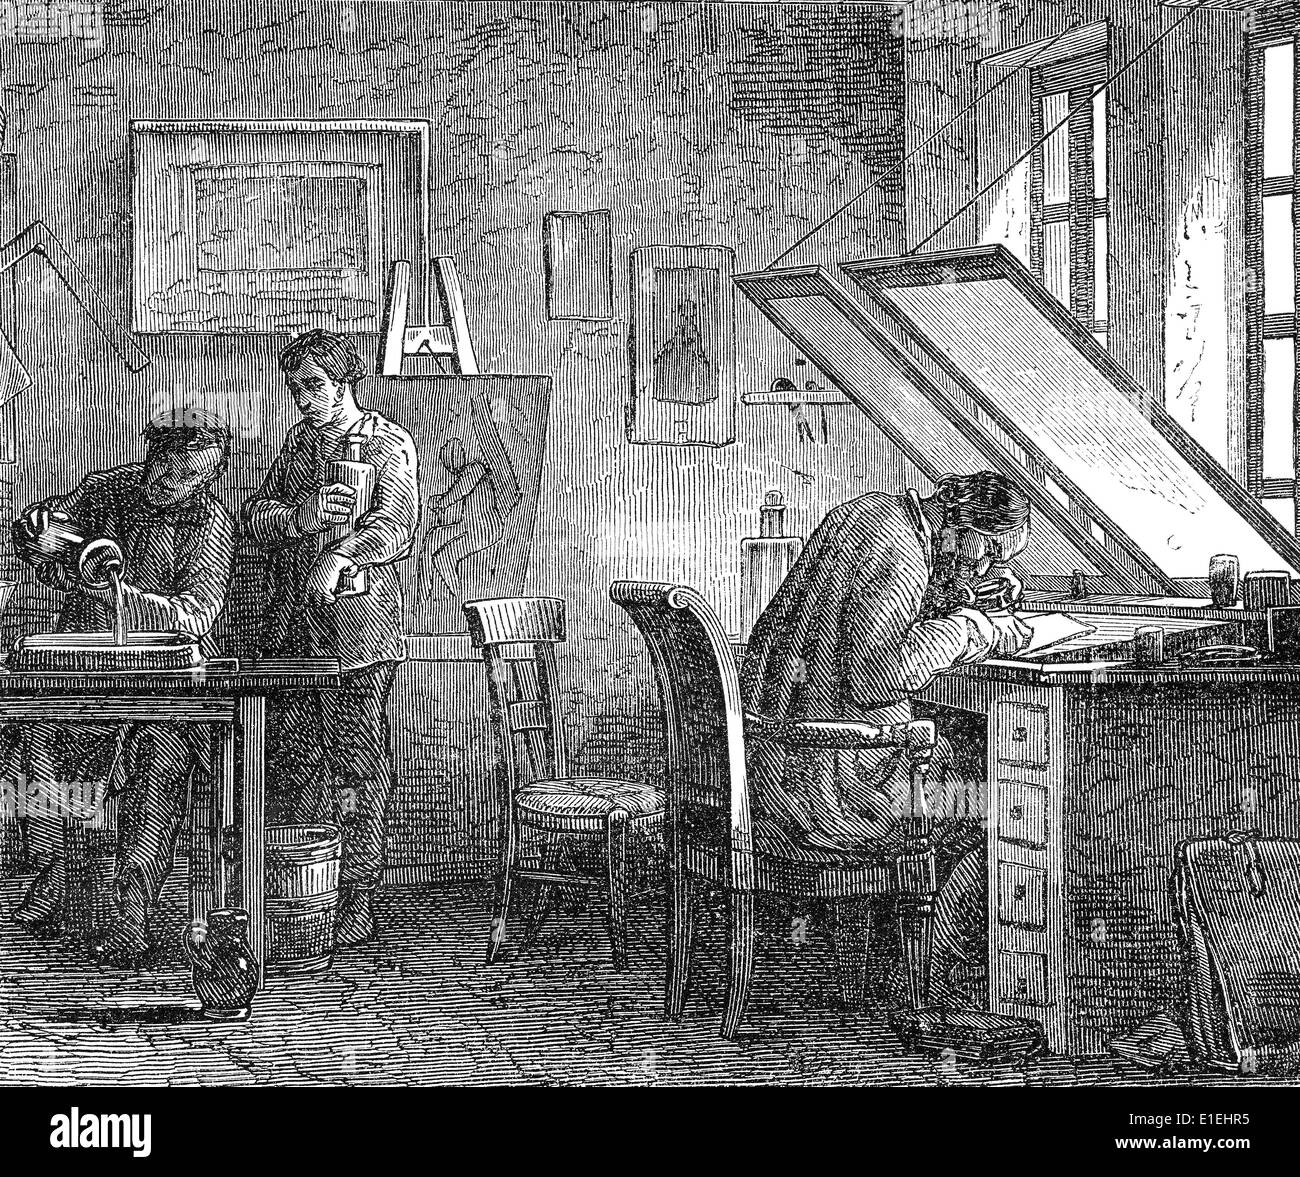 Engraver in 19th century, - Stock Image